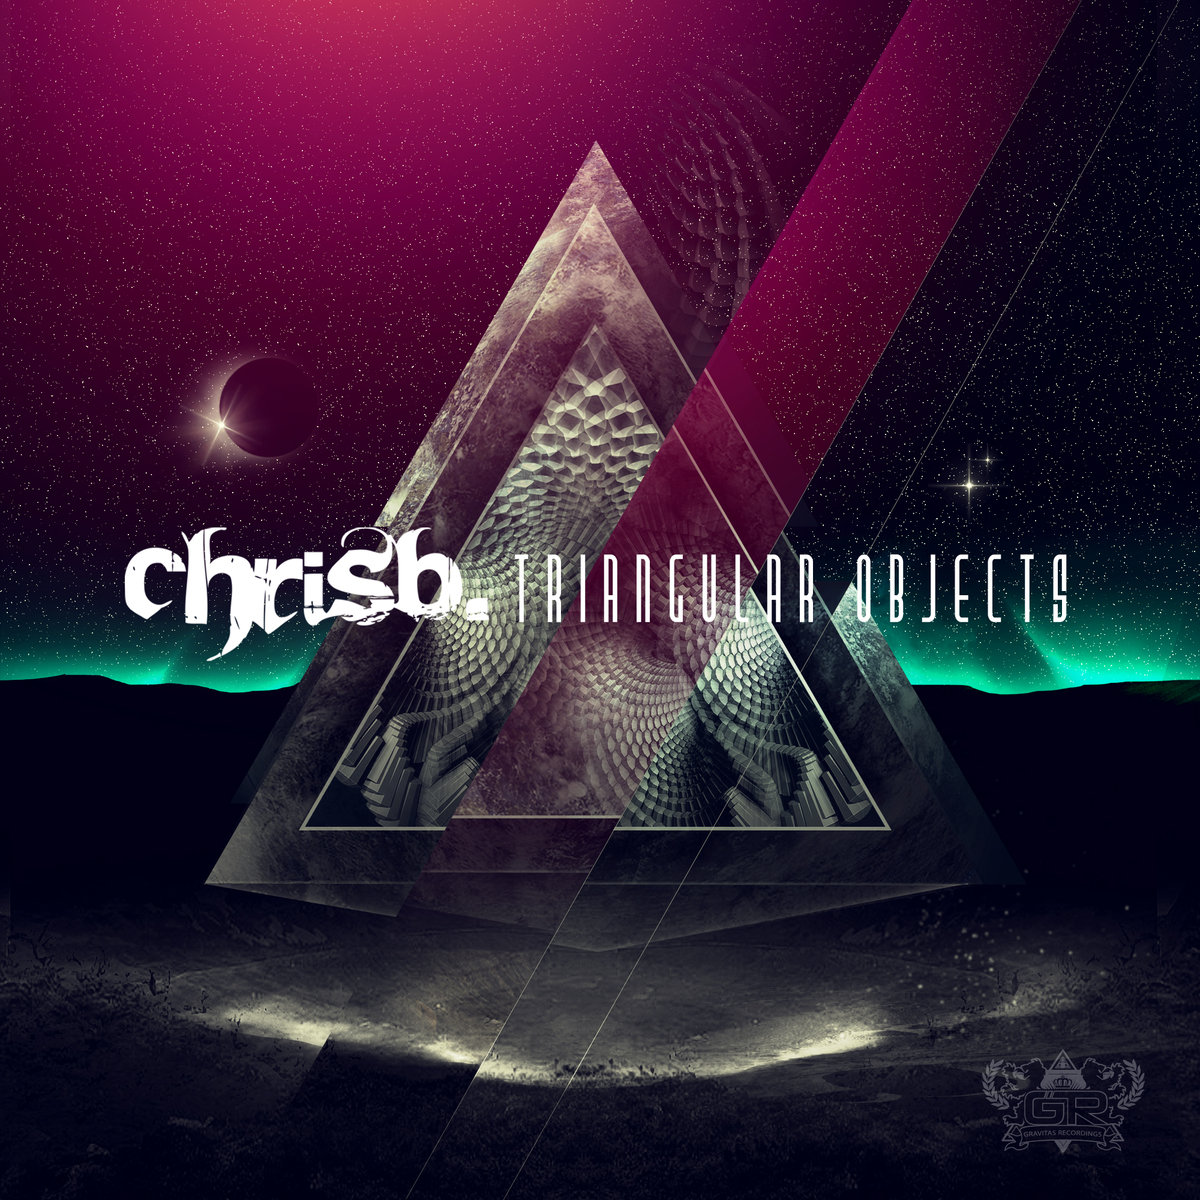 ChrisB. - Triangular Objects @ 'Triangular Objects' album (dubstep, electronic)